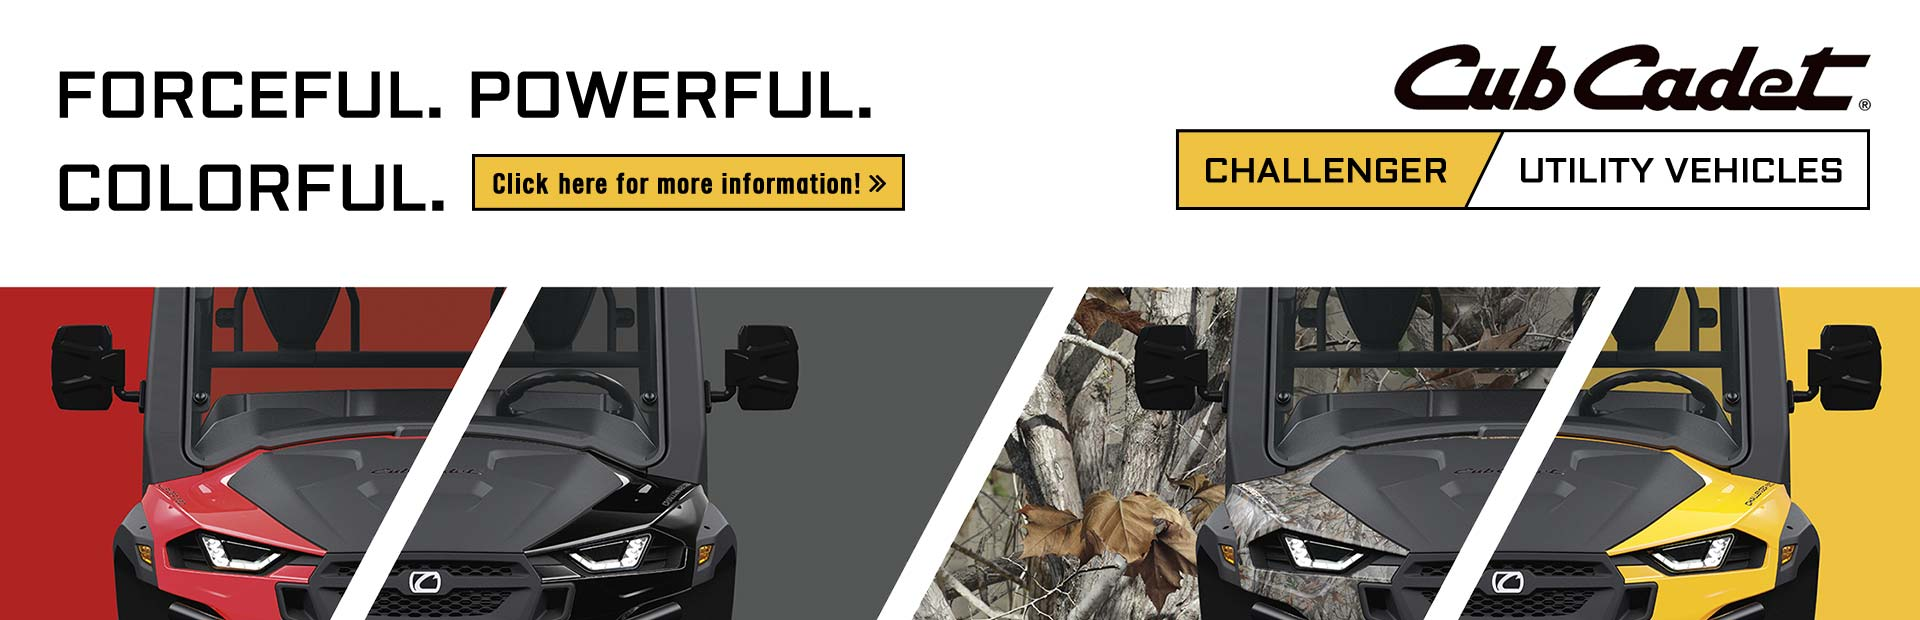 Cub Cadet Challenger Utility Vehicles: Click here for more information!